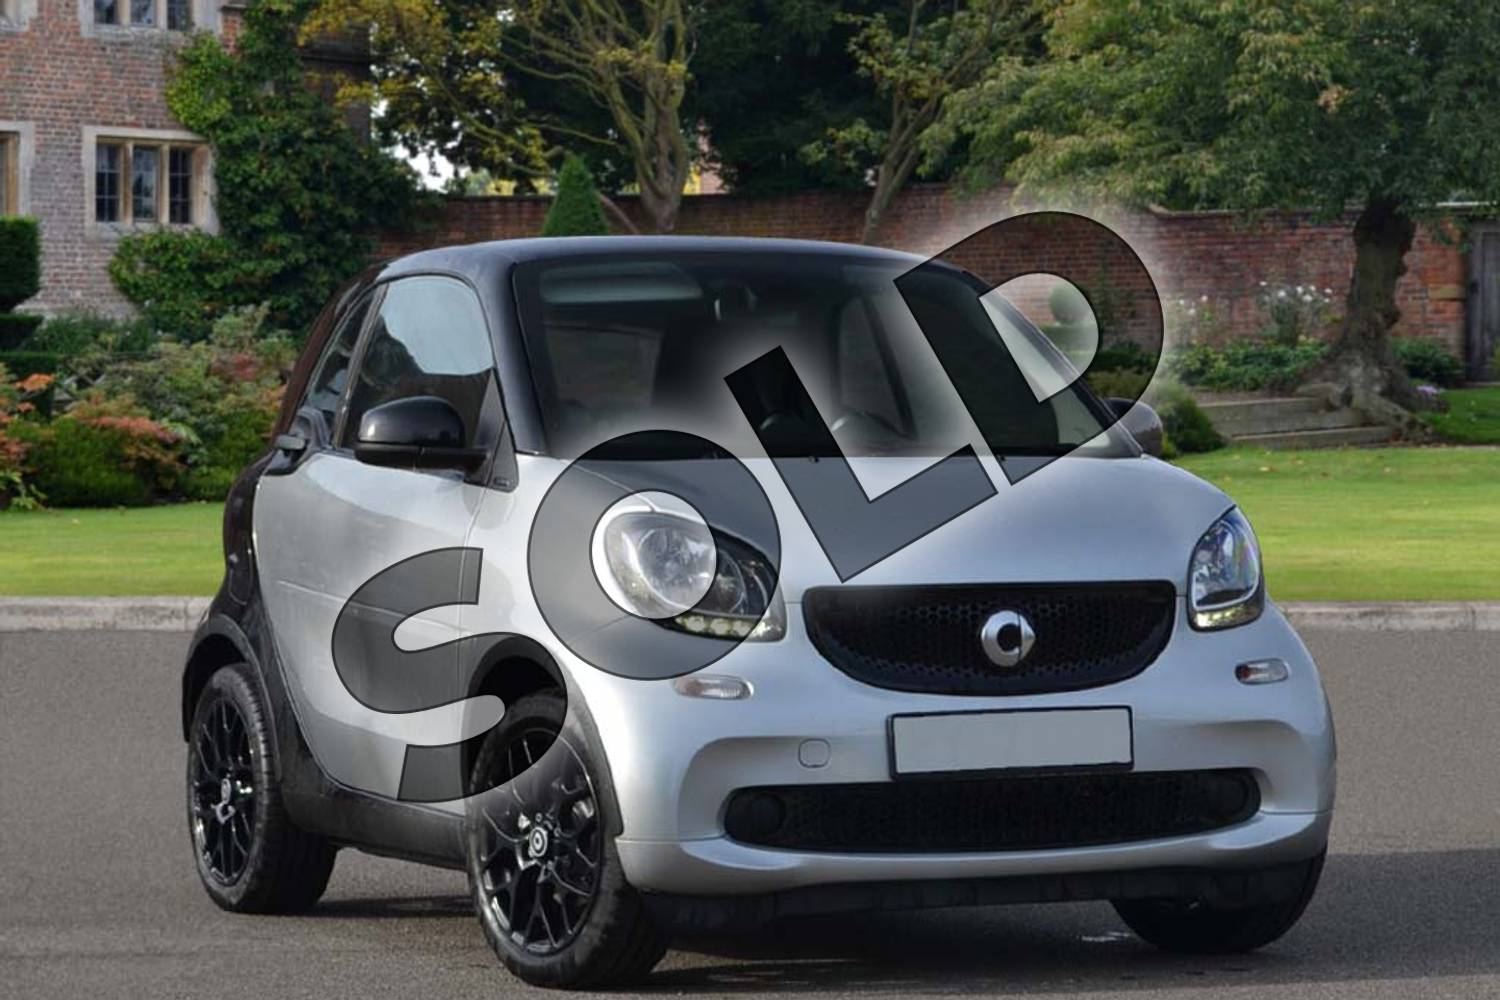 2018 Smart Fortwo Coupe 1.0 Prime Sport Premium 2dr Auto in cool silver metallic at smart at Mercedes-Benz of Lincoln